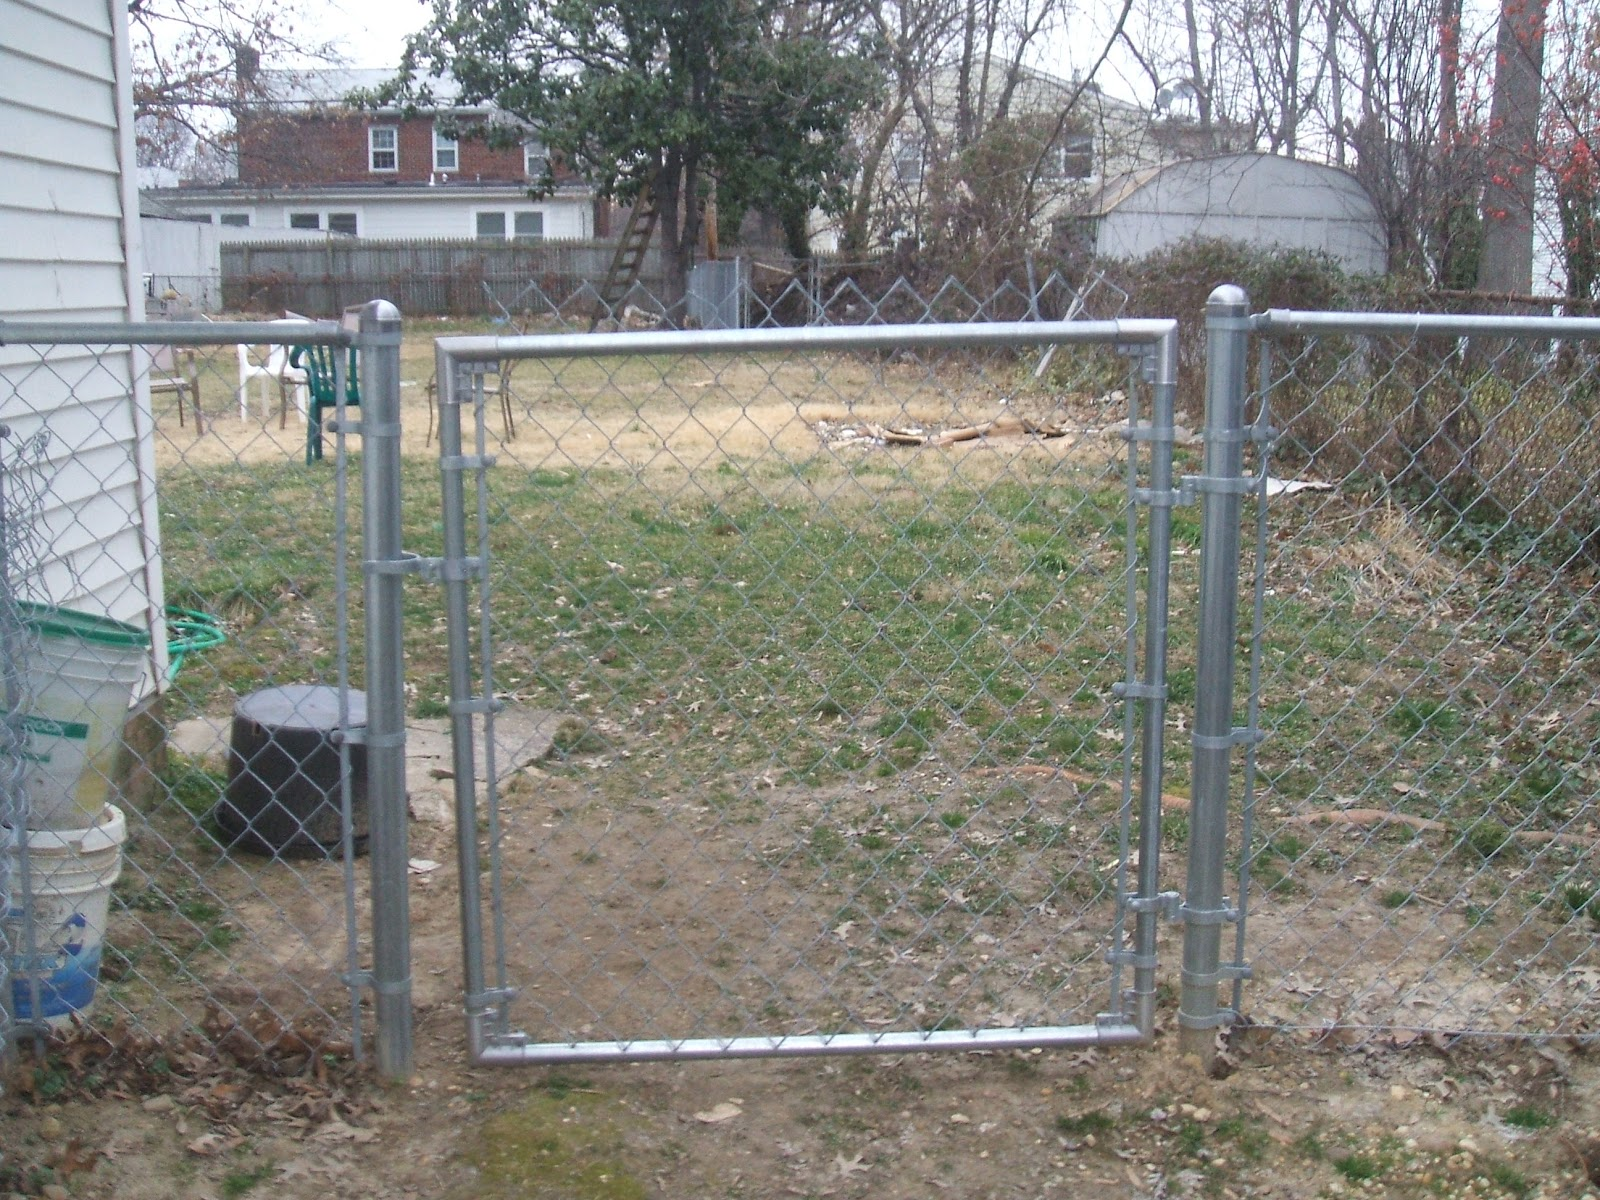 And We Have A Gate Still Need To Trim The Top Off Of Chain Link Fencing But For Now That S Just Cosmetic Consideration